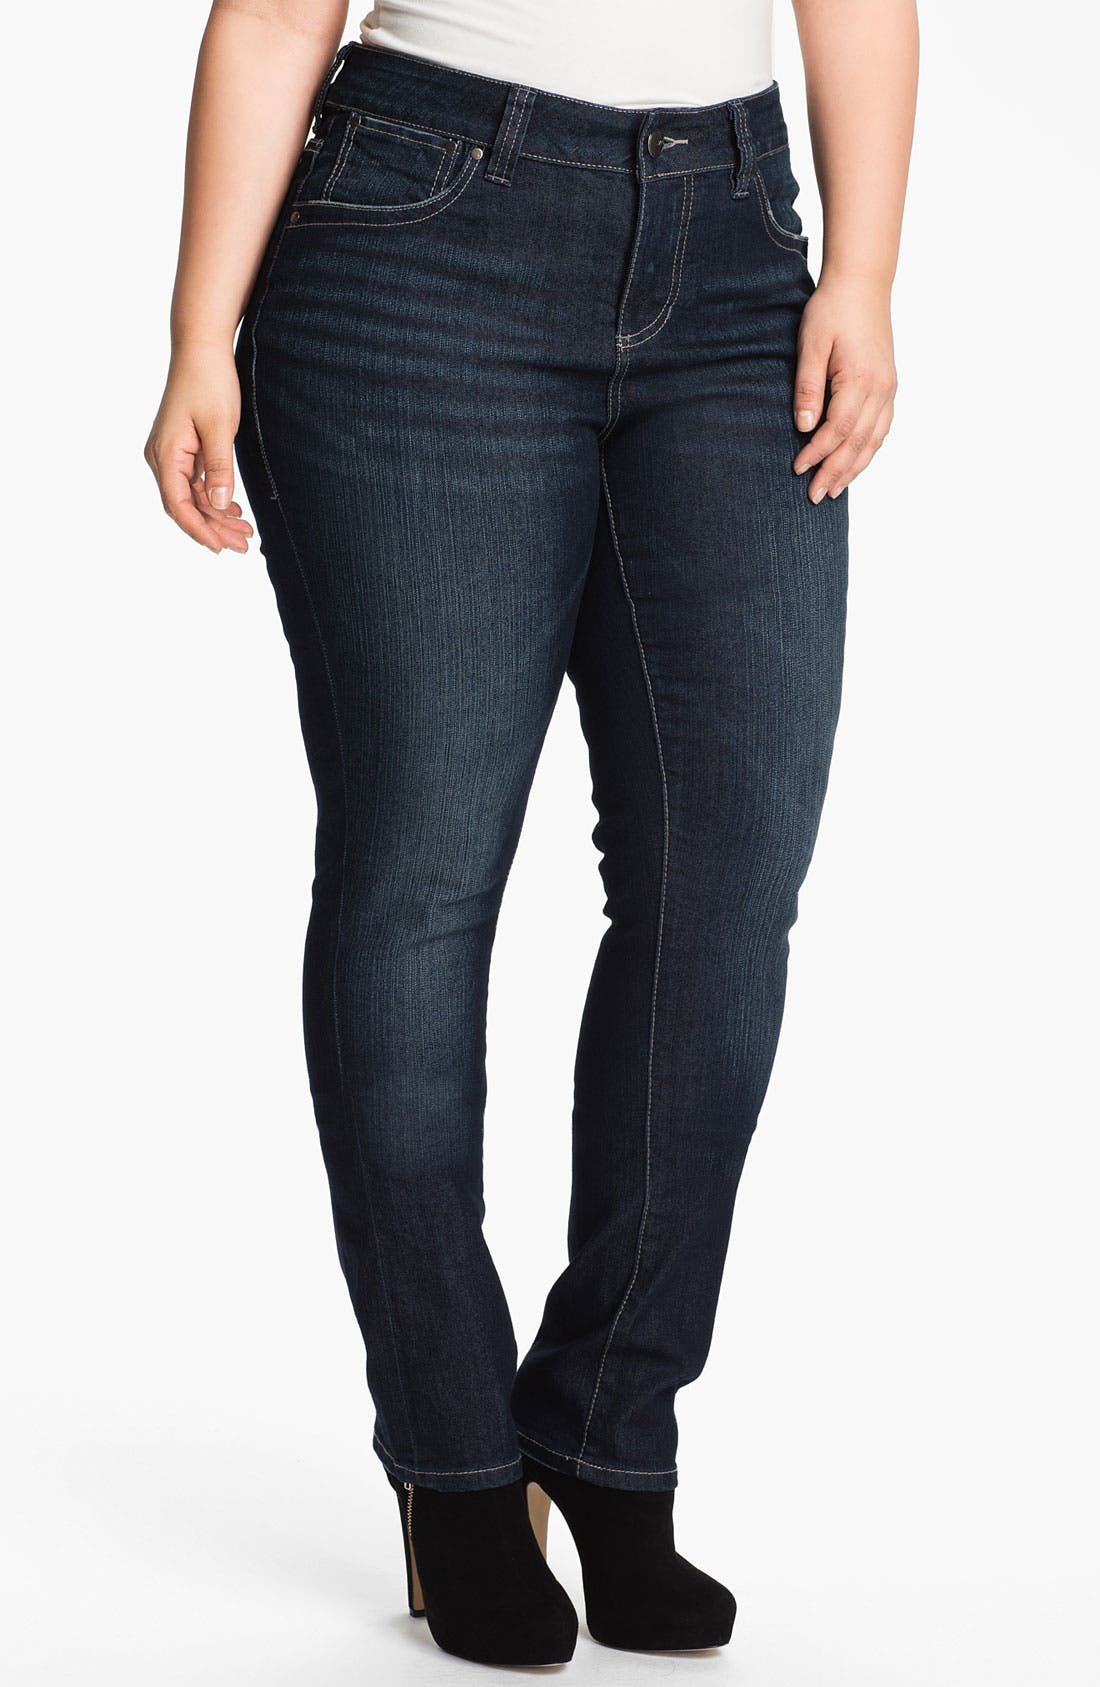 Alternate Image 1 Selected - Jag Jeans 'Bevin' Slim Stretch Jeans (Plus Size)